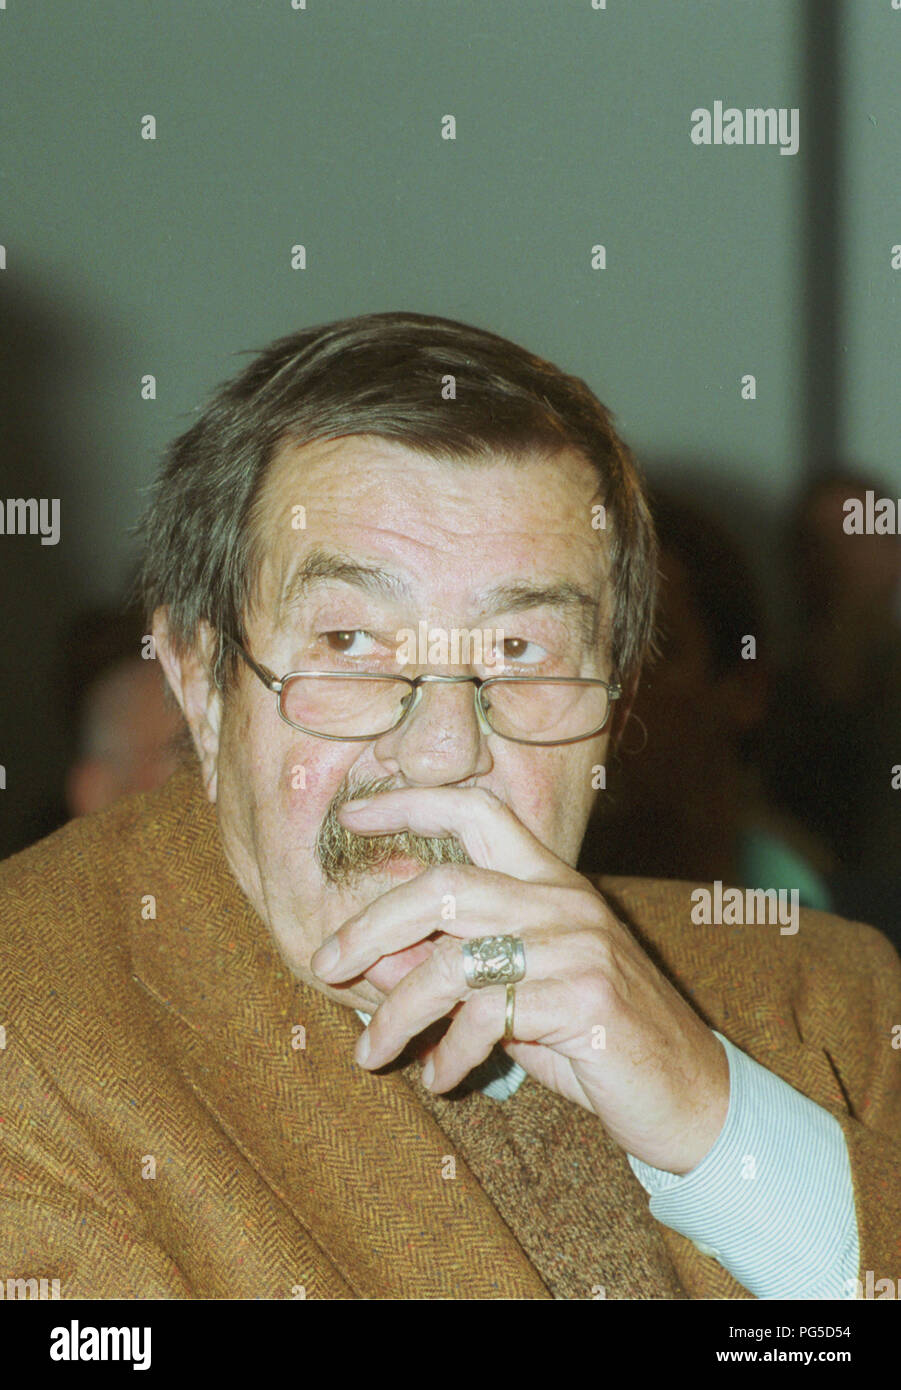 Berlin, DEU, 30.10.2002: Portrait Guenter Grass, writer and owner of the nobel prize for literature 1999 (Germany) at the celebration of his 75.birthday - Stock Image